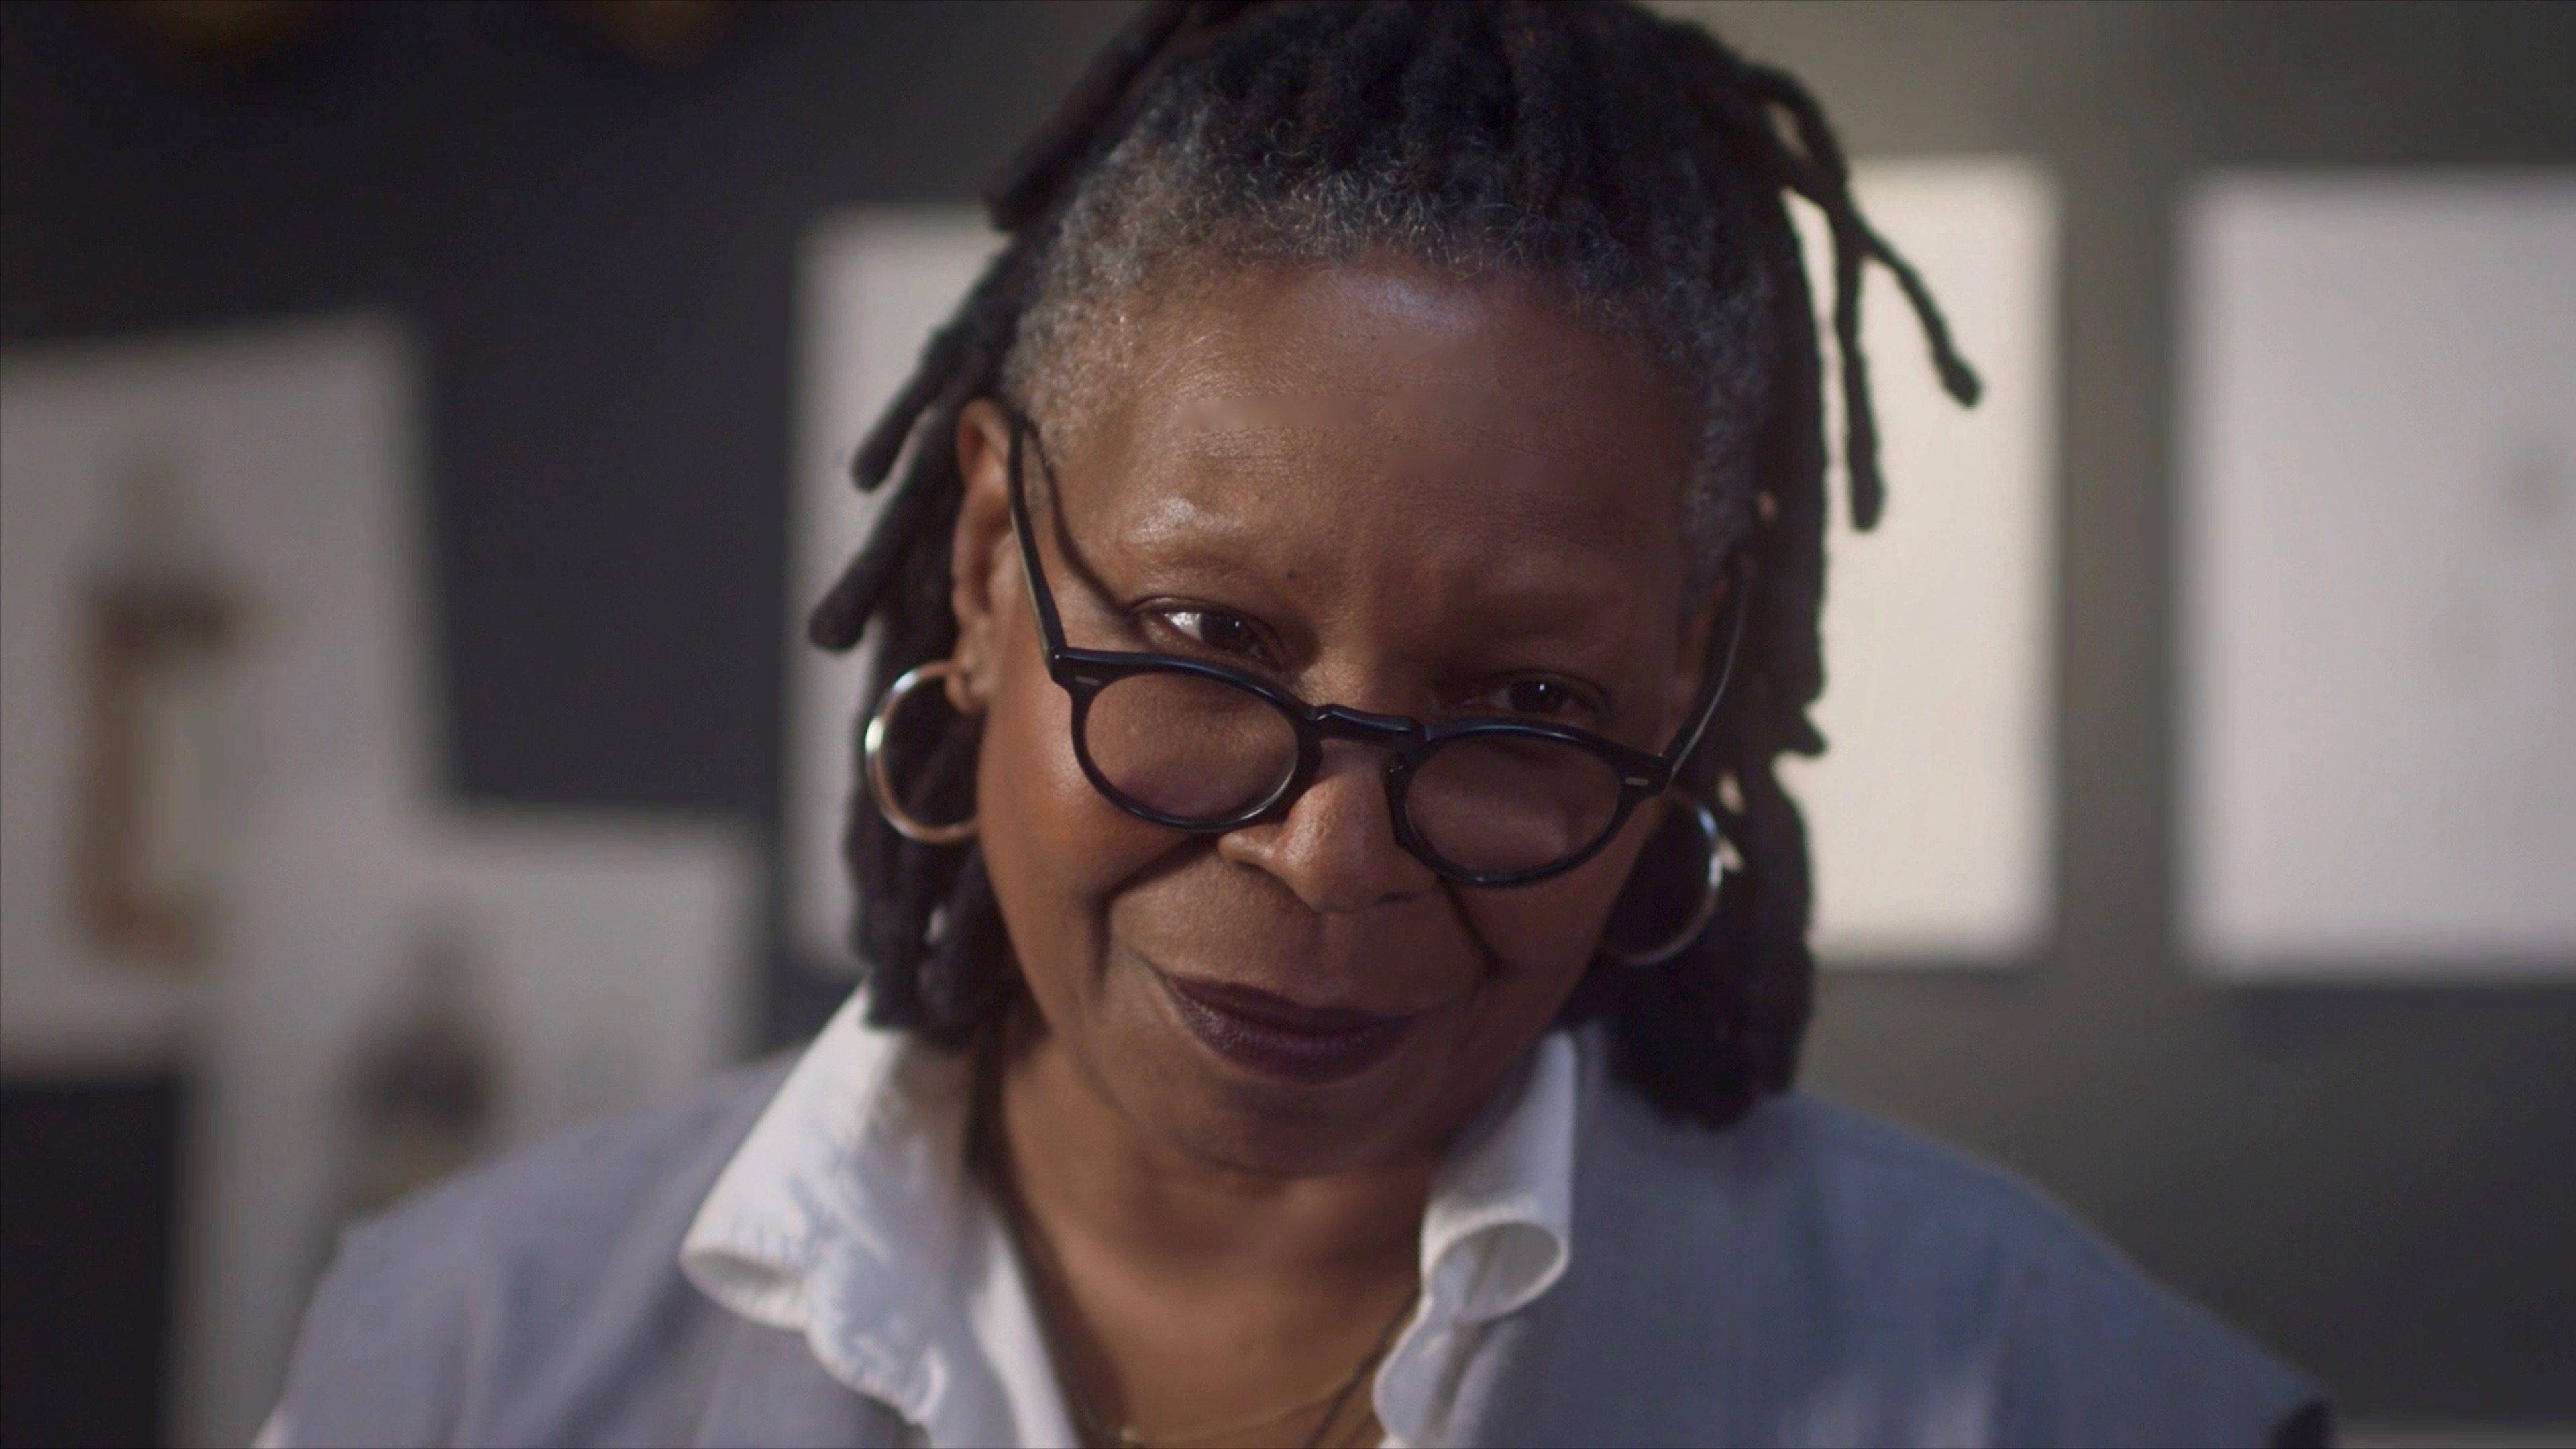 Chinonye Chukwu's Feature 'Till' Adds Seven More Stars to the Cast Alongside Whoopi Goldberg, Danielle Deadwyler, and Jalyn Hall